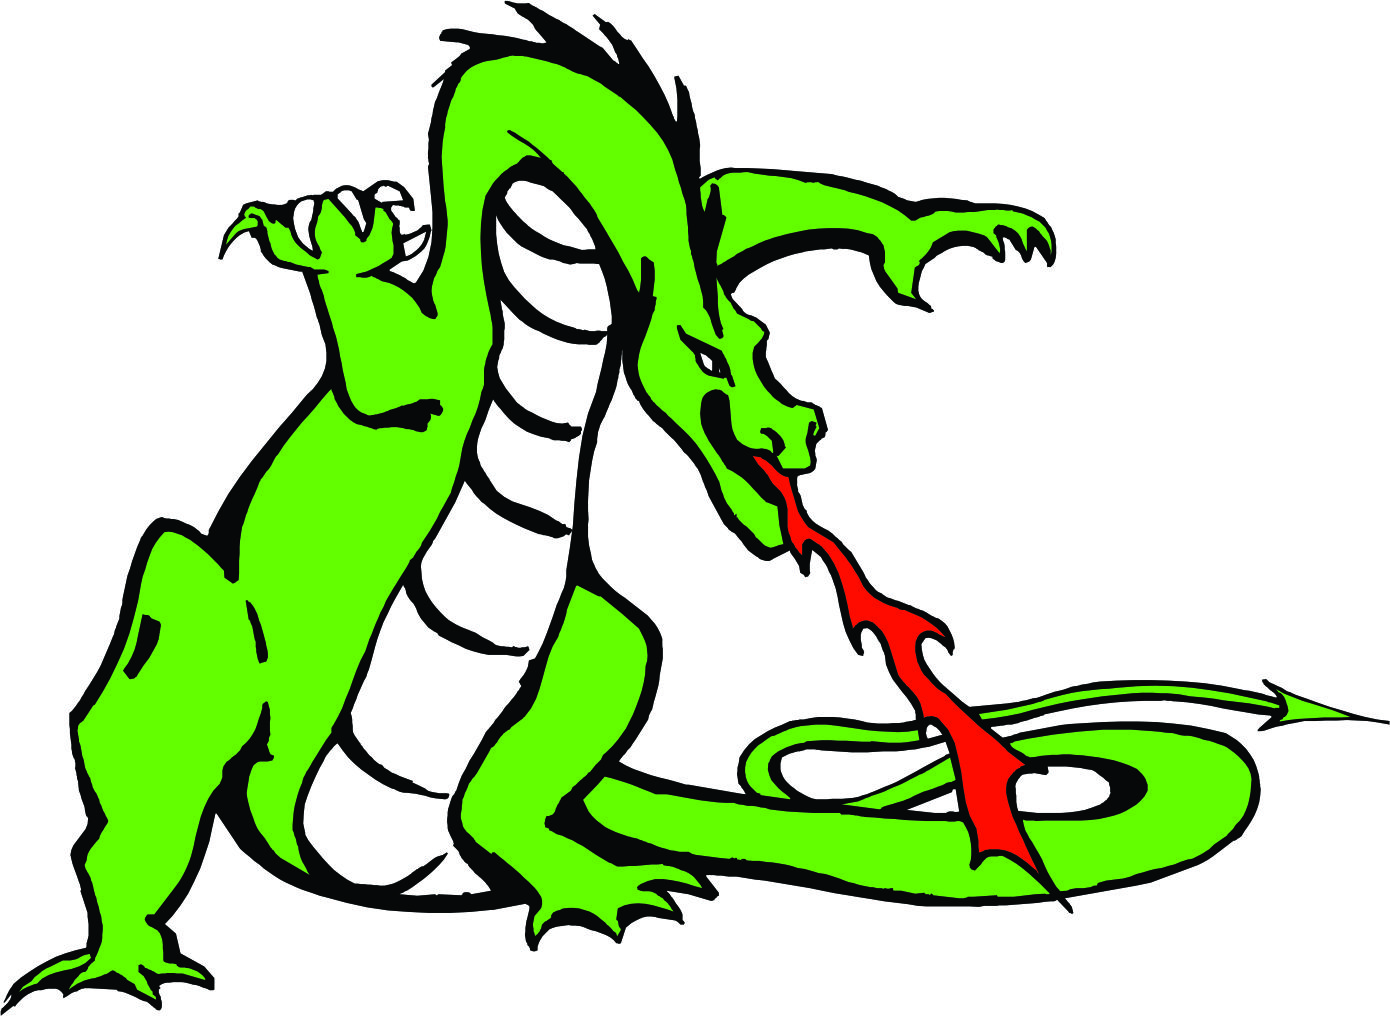 Fire Breathing Dragon Images Clipart | Free download best Fire ...